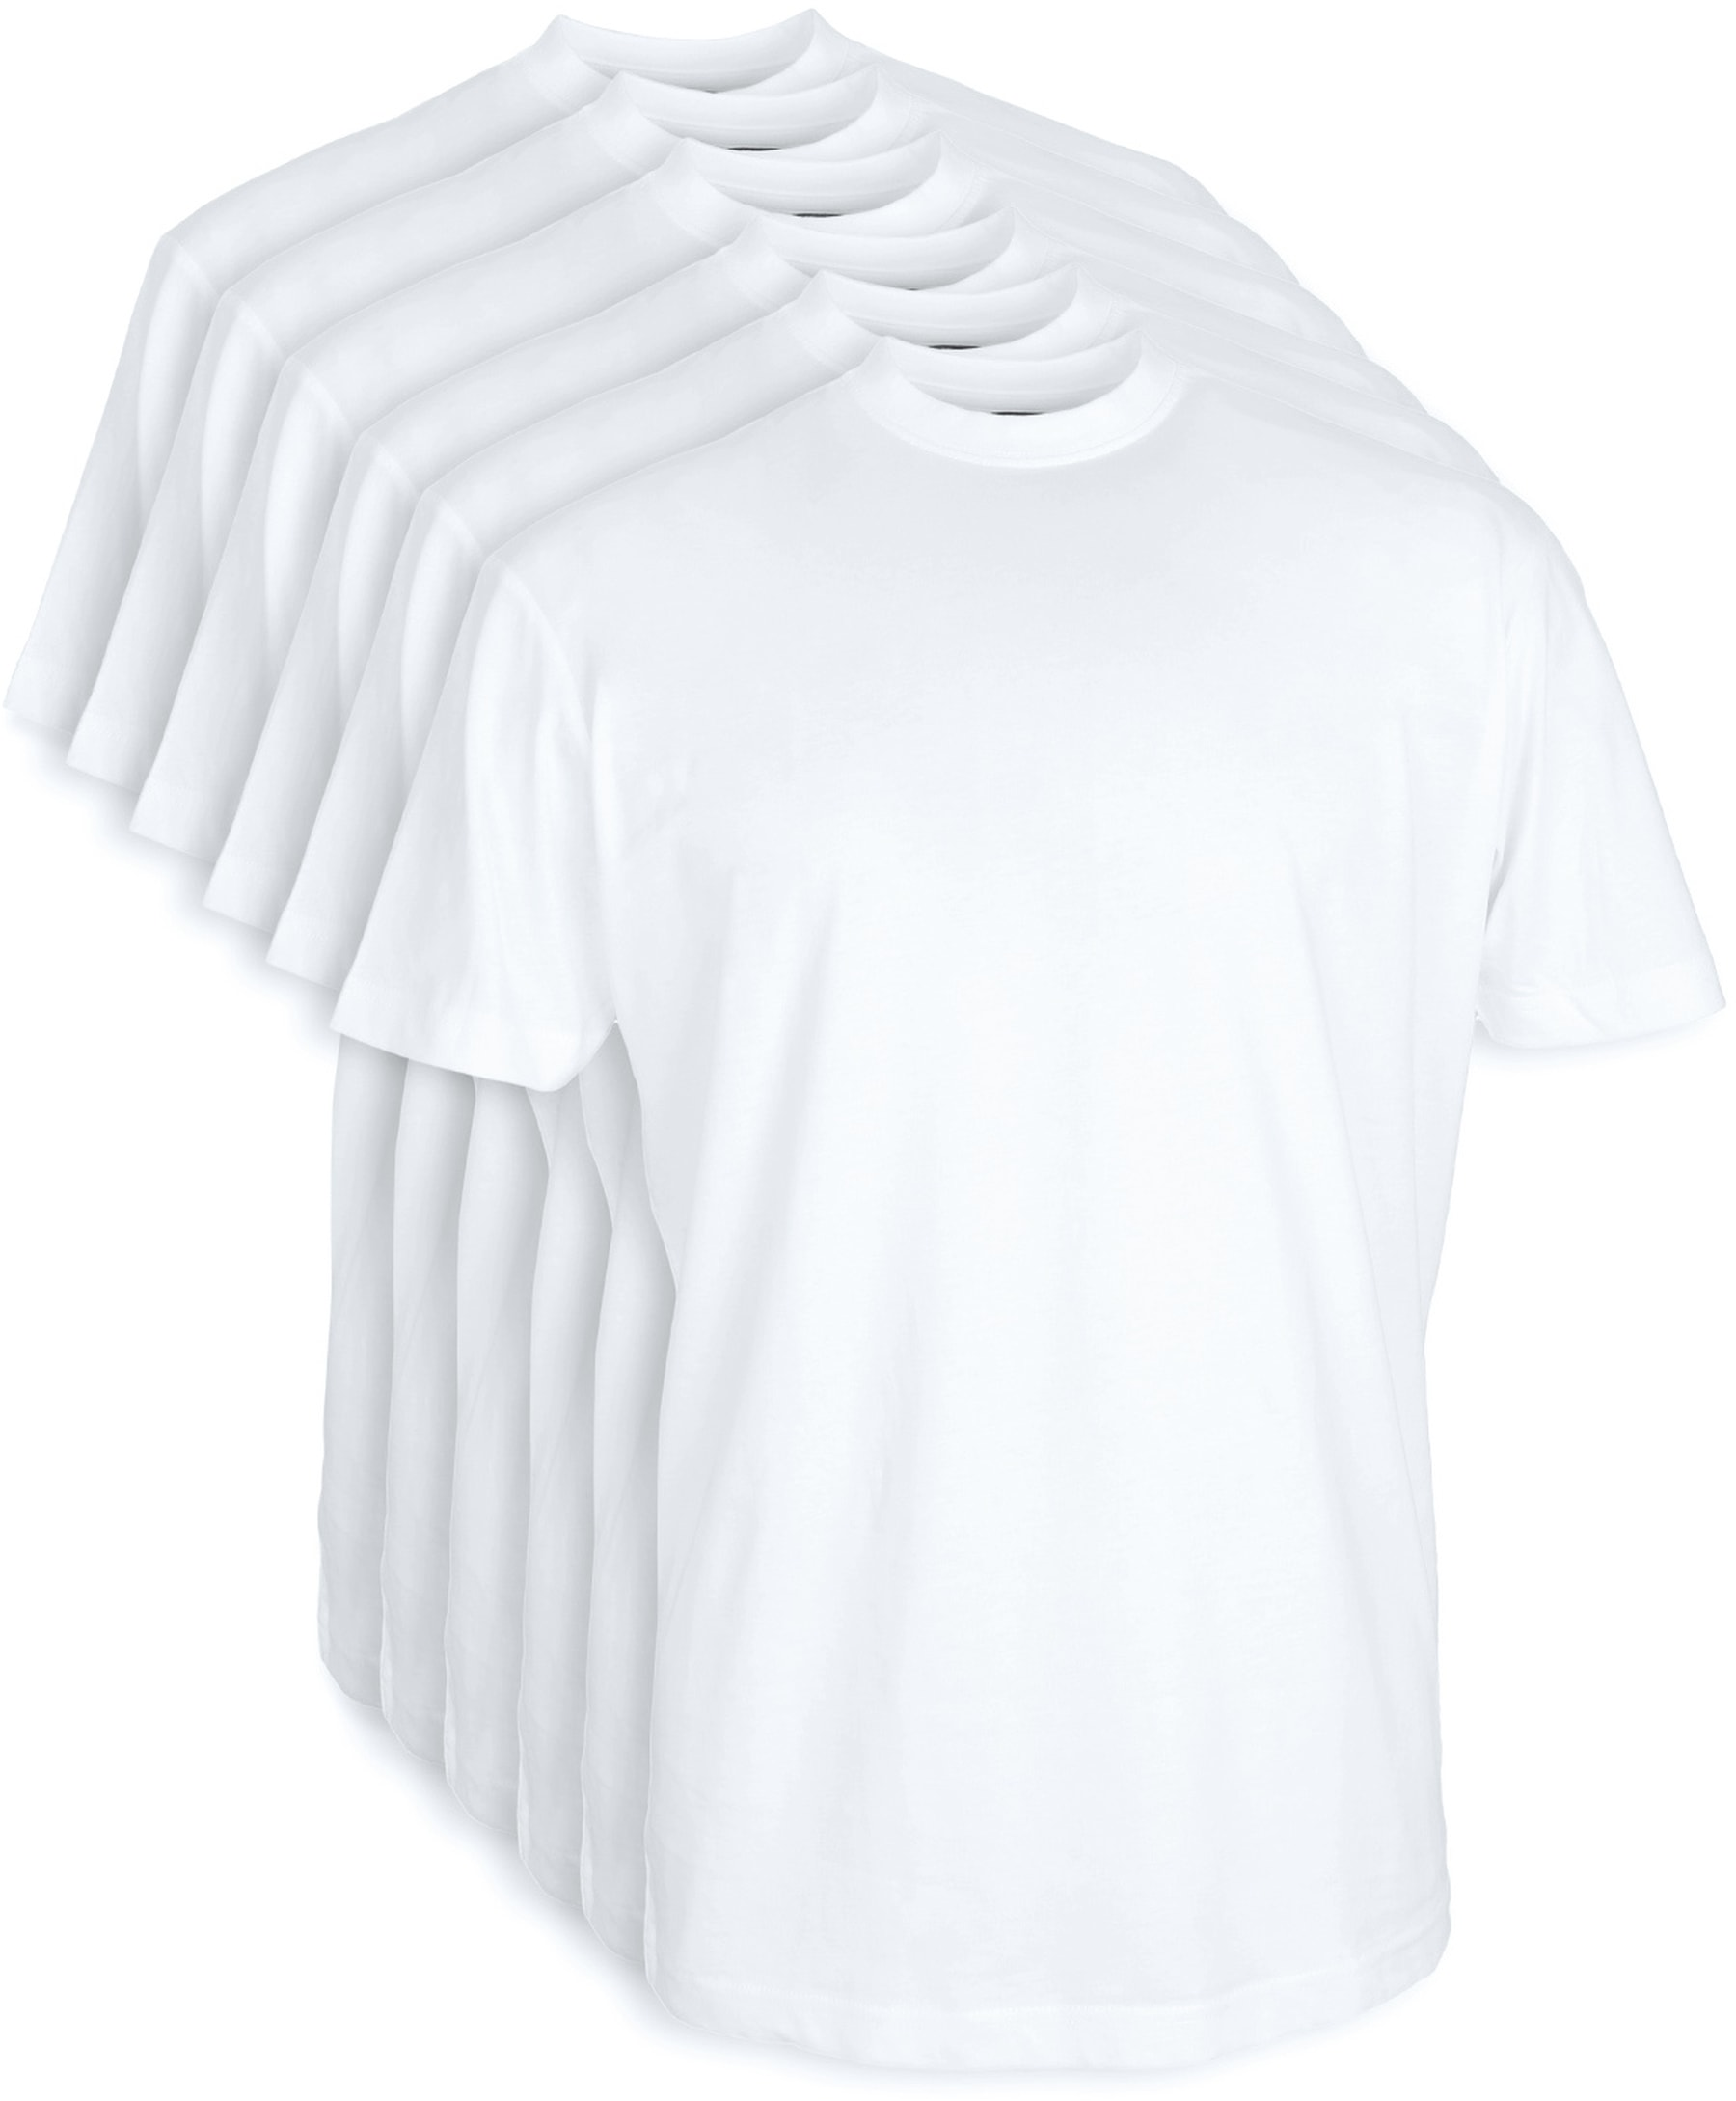 Suitable T-Shirt Obra 6-Pack White foto 0